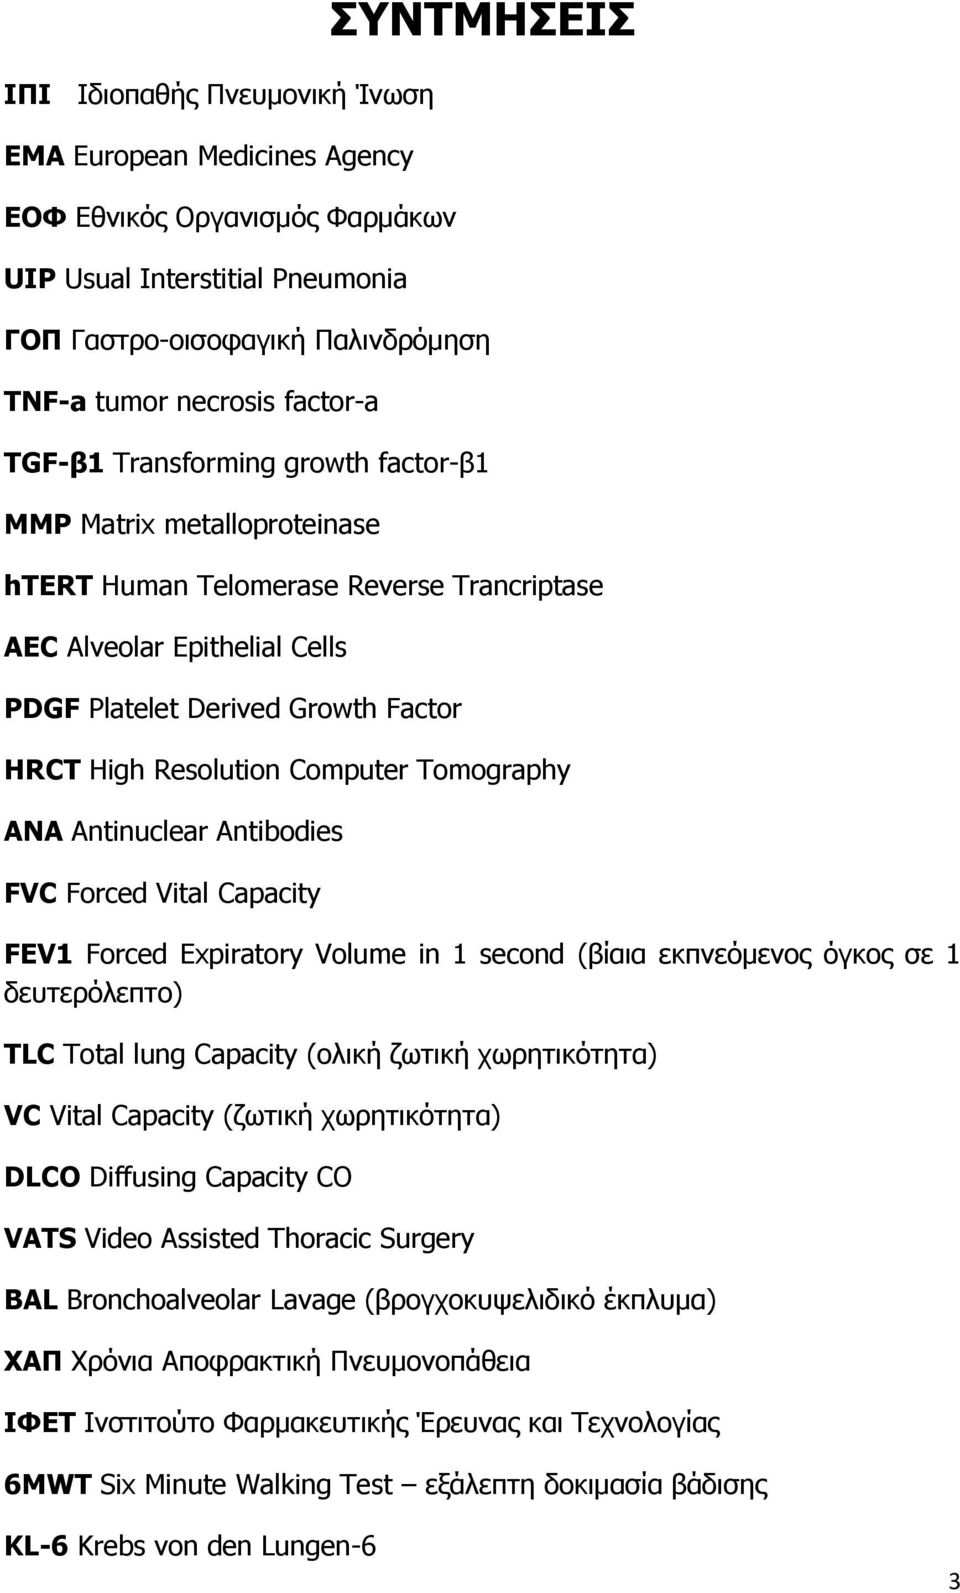 Resolution Computer Tomography ANA Antinuclear Antibodies FVC Forced Vital Capacity FEV1 Forced Expiratory Volume in 1 second (βίαια εκπνεόμενος όγκος σε 1 δευτερόλεπτο) TLC Total lung Capacity